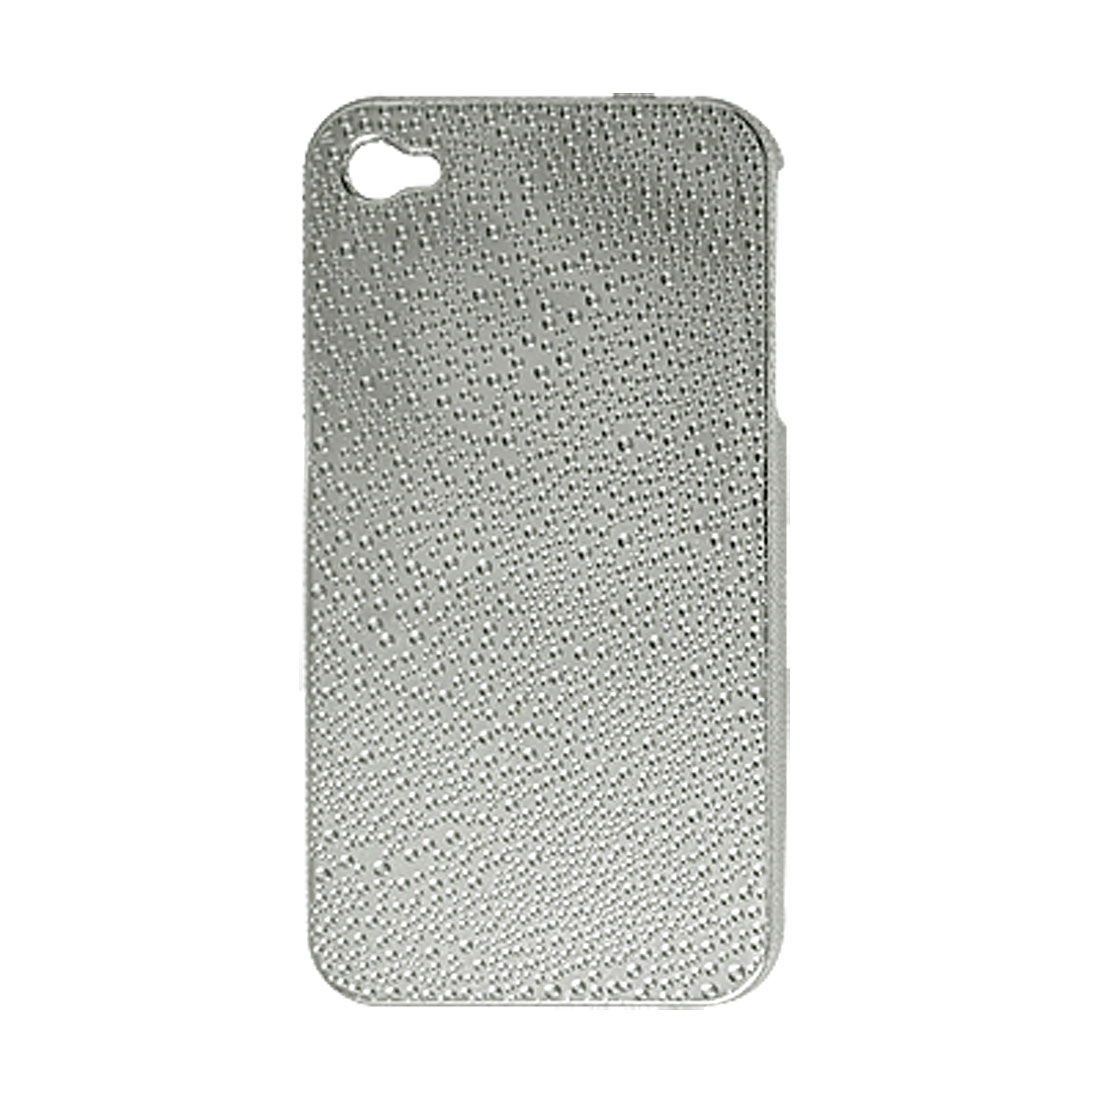 Silver Tone Glittery Hard Plastic Back Case + Screen Guard for iPhone 4 4G